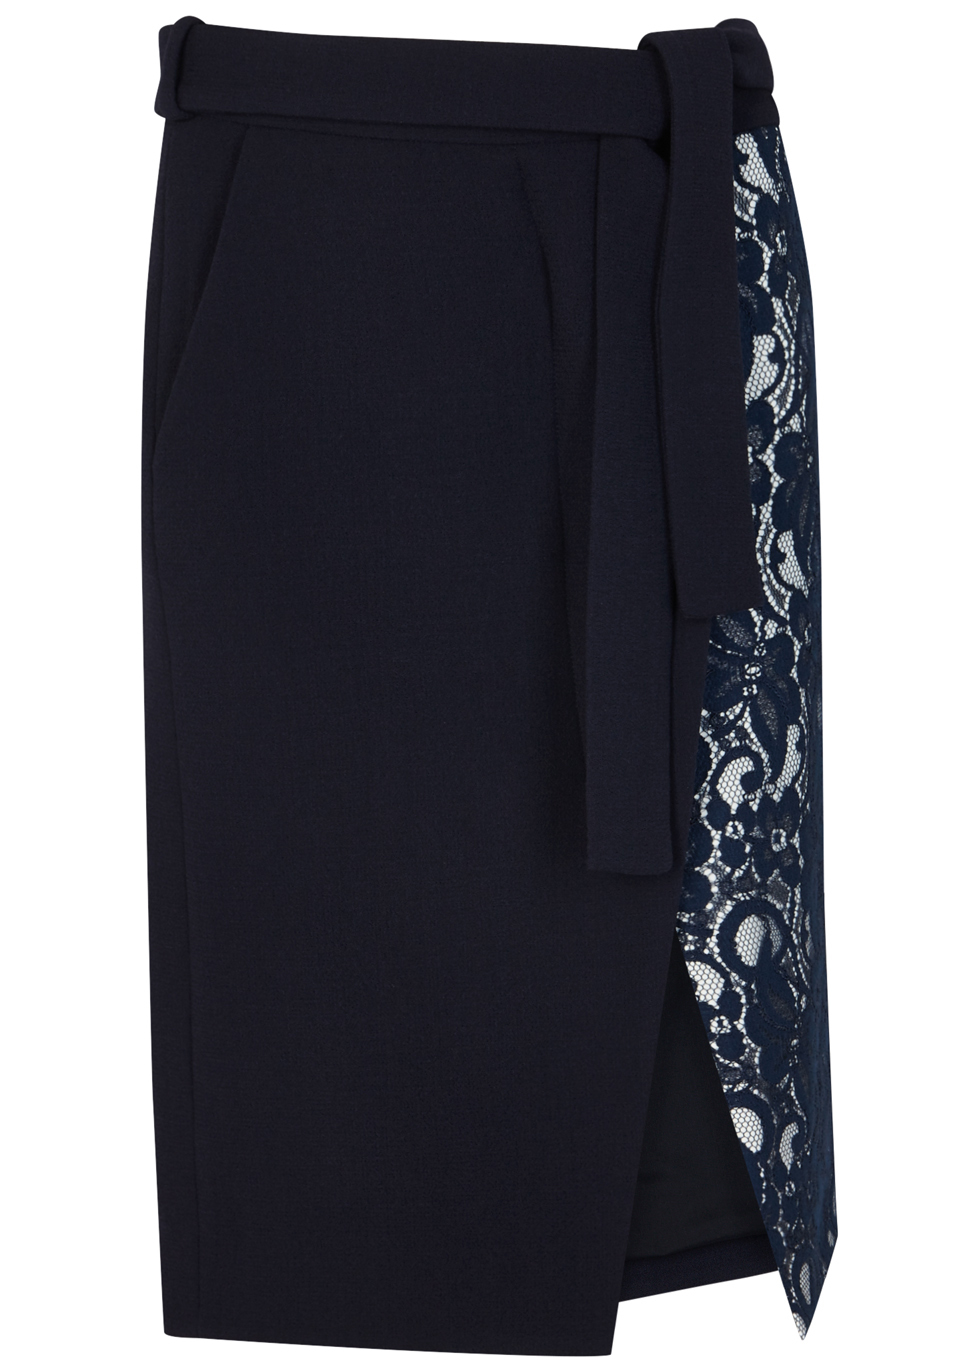 Navy Lace And Wool Wrap Skirt - length: below the knee; pattern: plain; style: wrap/faux wrap; fit: tailored/fitted; waist: mid/regular rise; predominant colour: navy; occasions: evening, creative work; fibres: wool - mix; pattern type: fabric; texture group: woven light midweight; embellishment: lace; season: a/w 2016; wardrobe: highlight